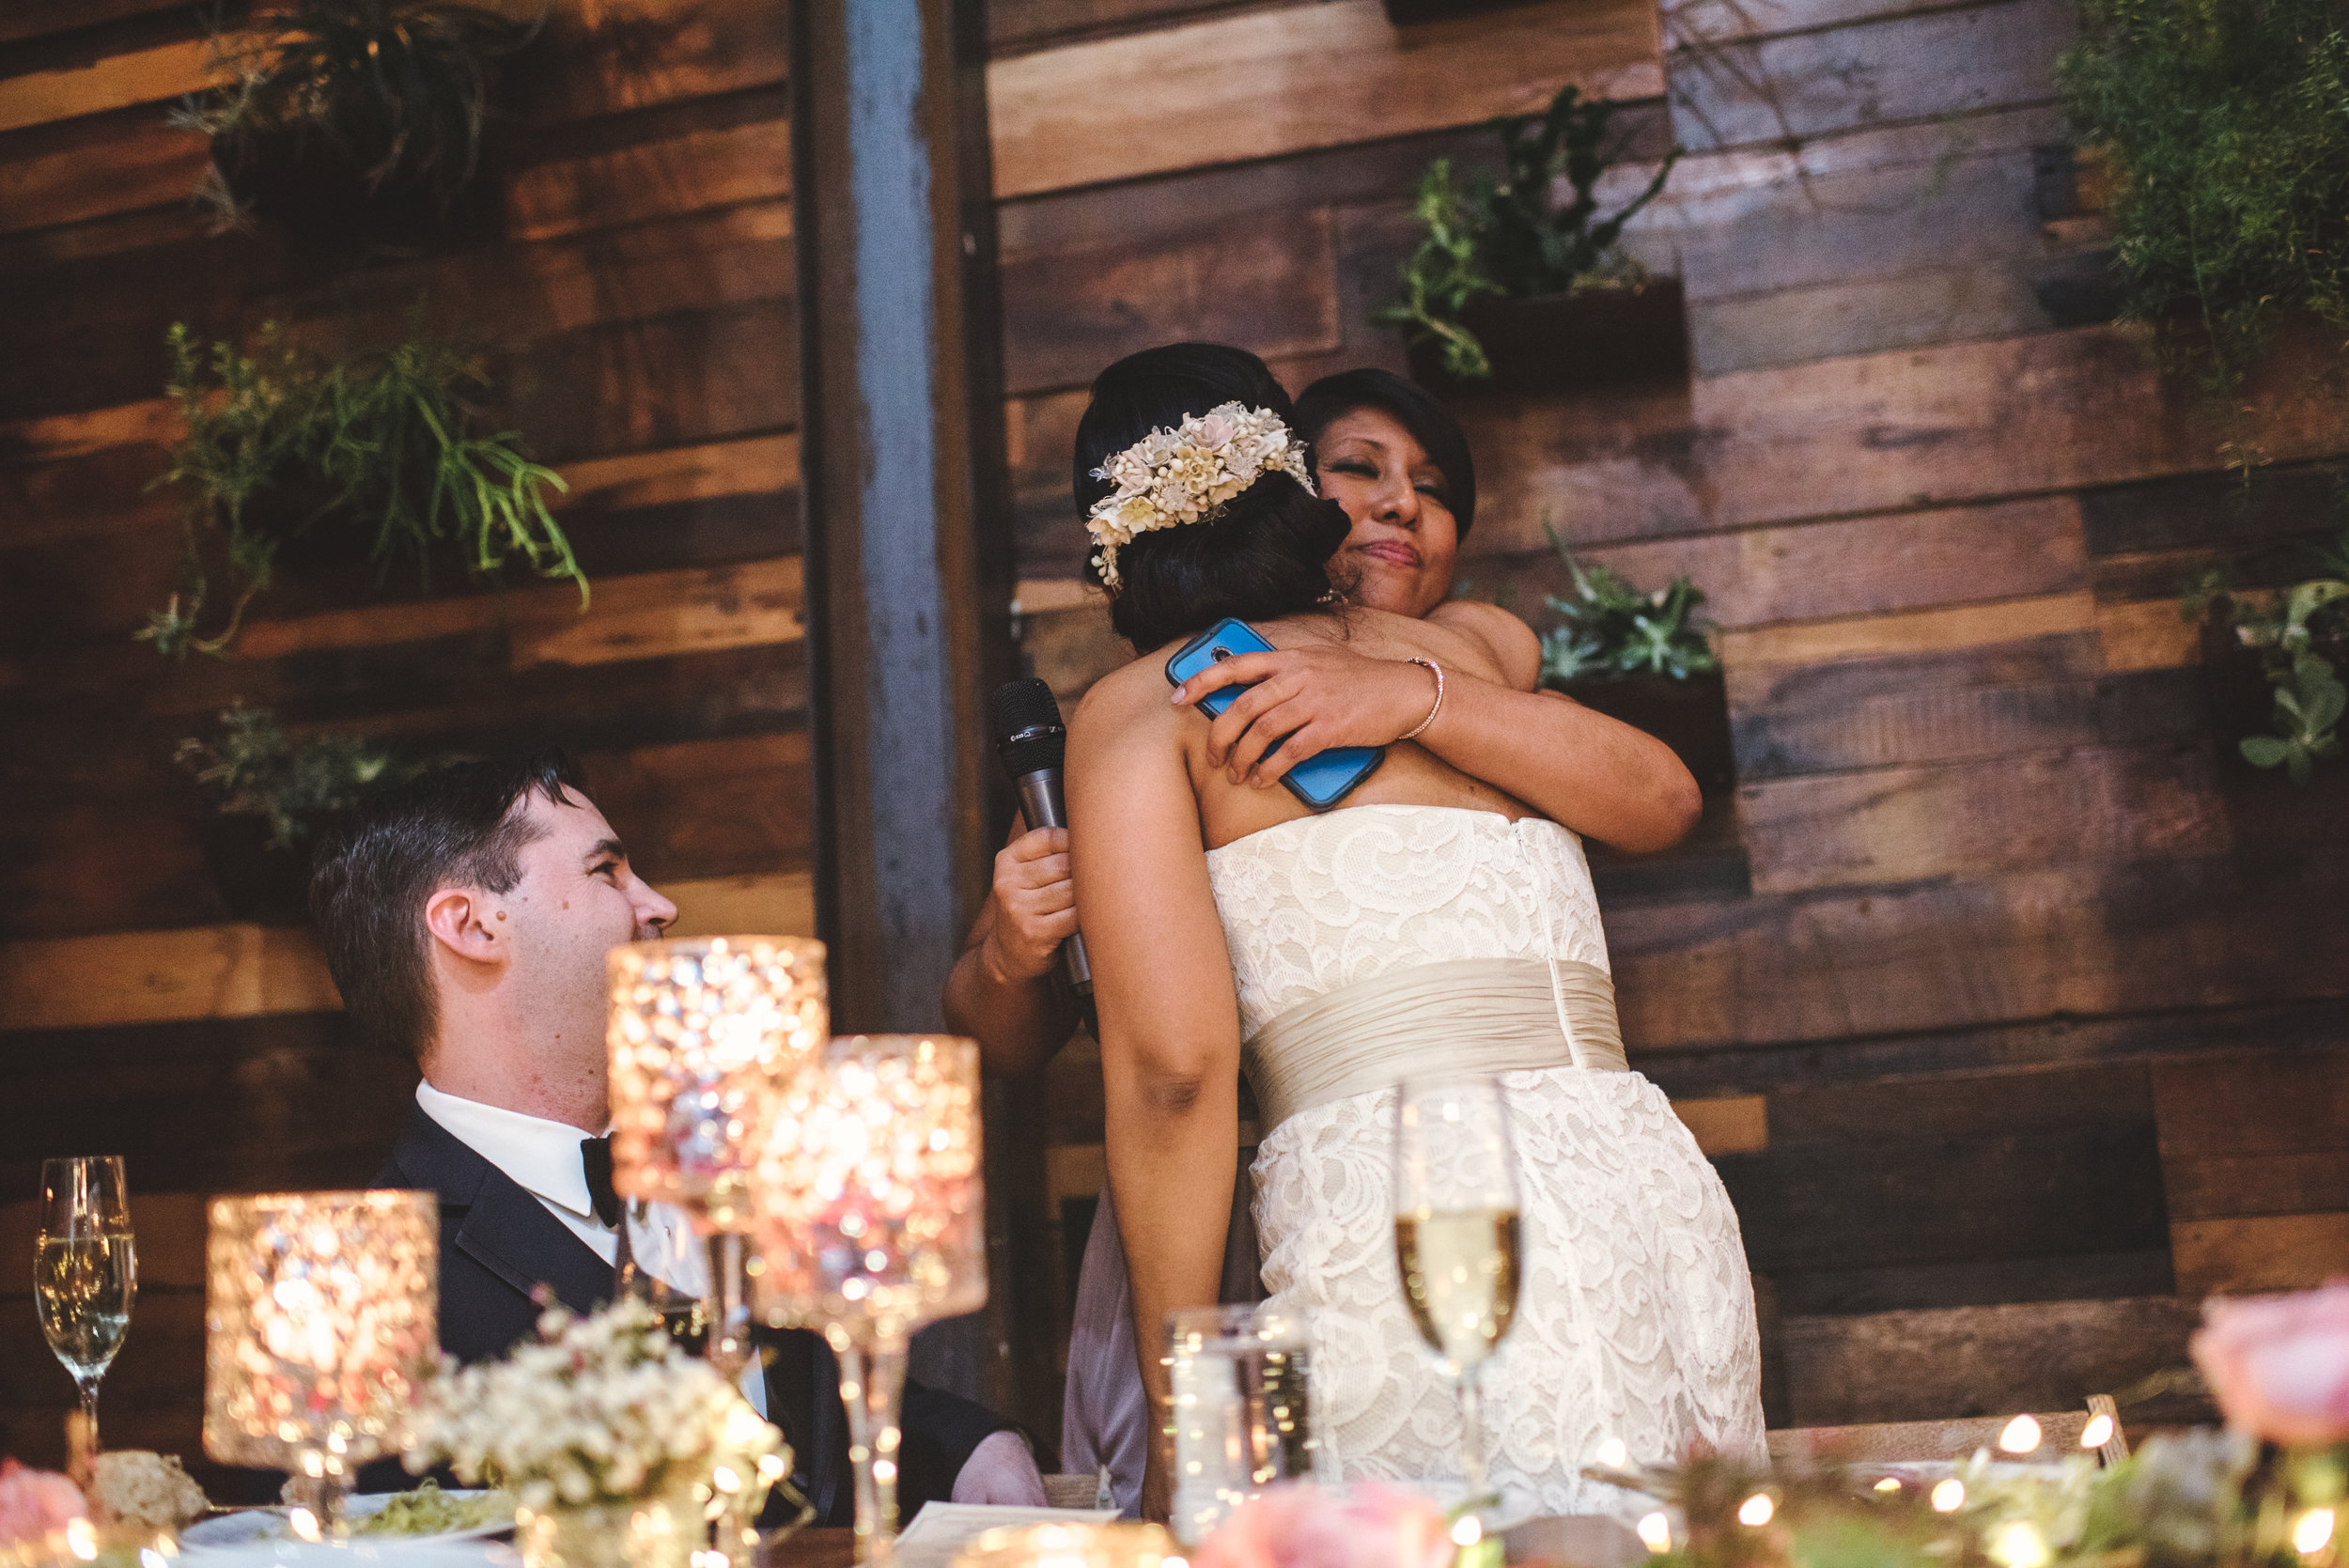 BROOKLYN WINERY WEDDING - TWOTWENTY by CHI-CHI AGBIM-377.jpg